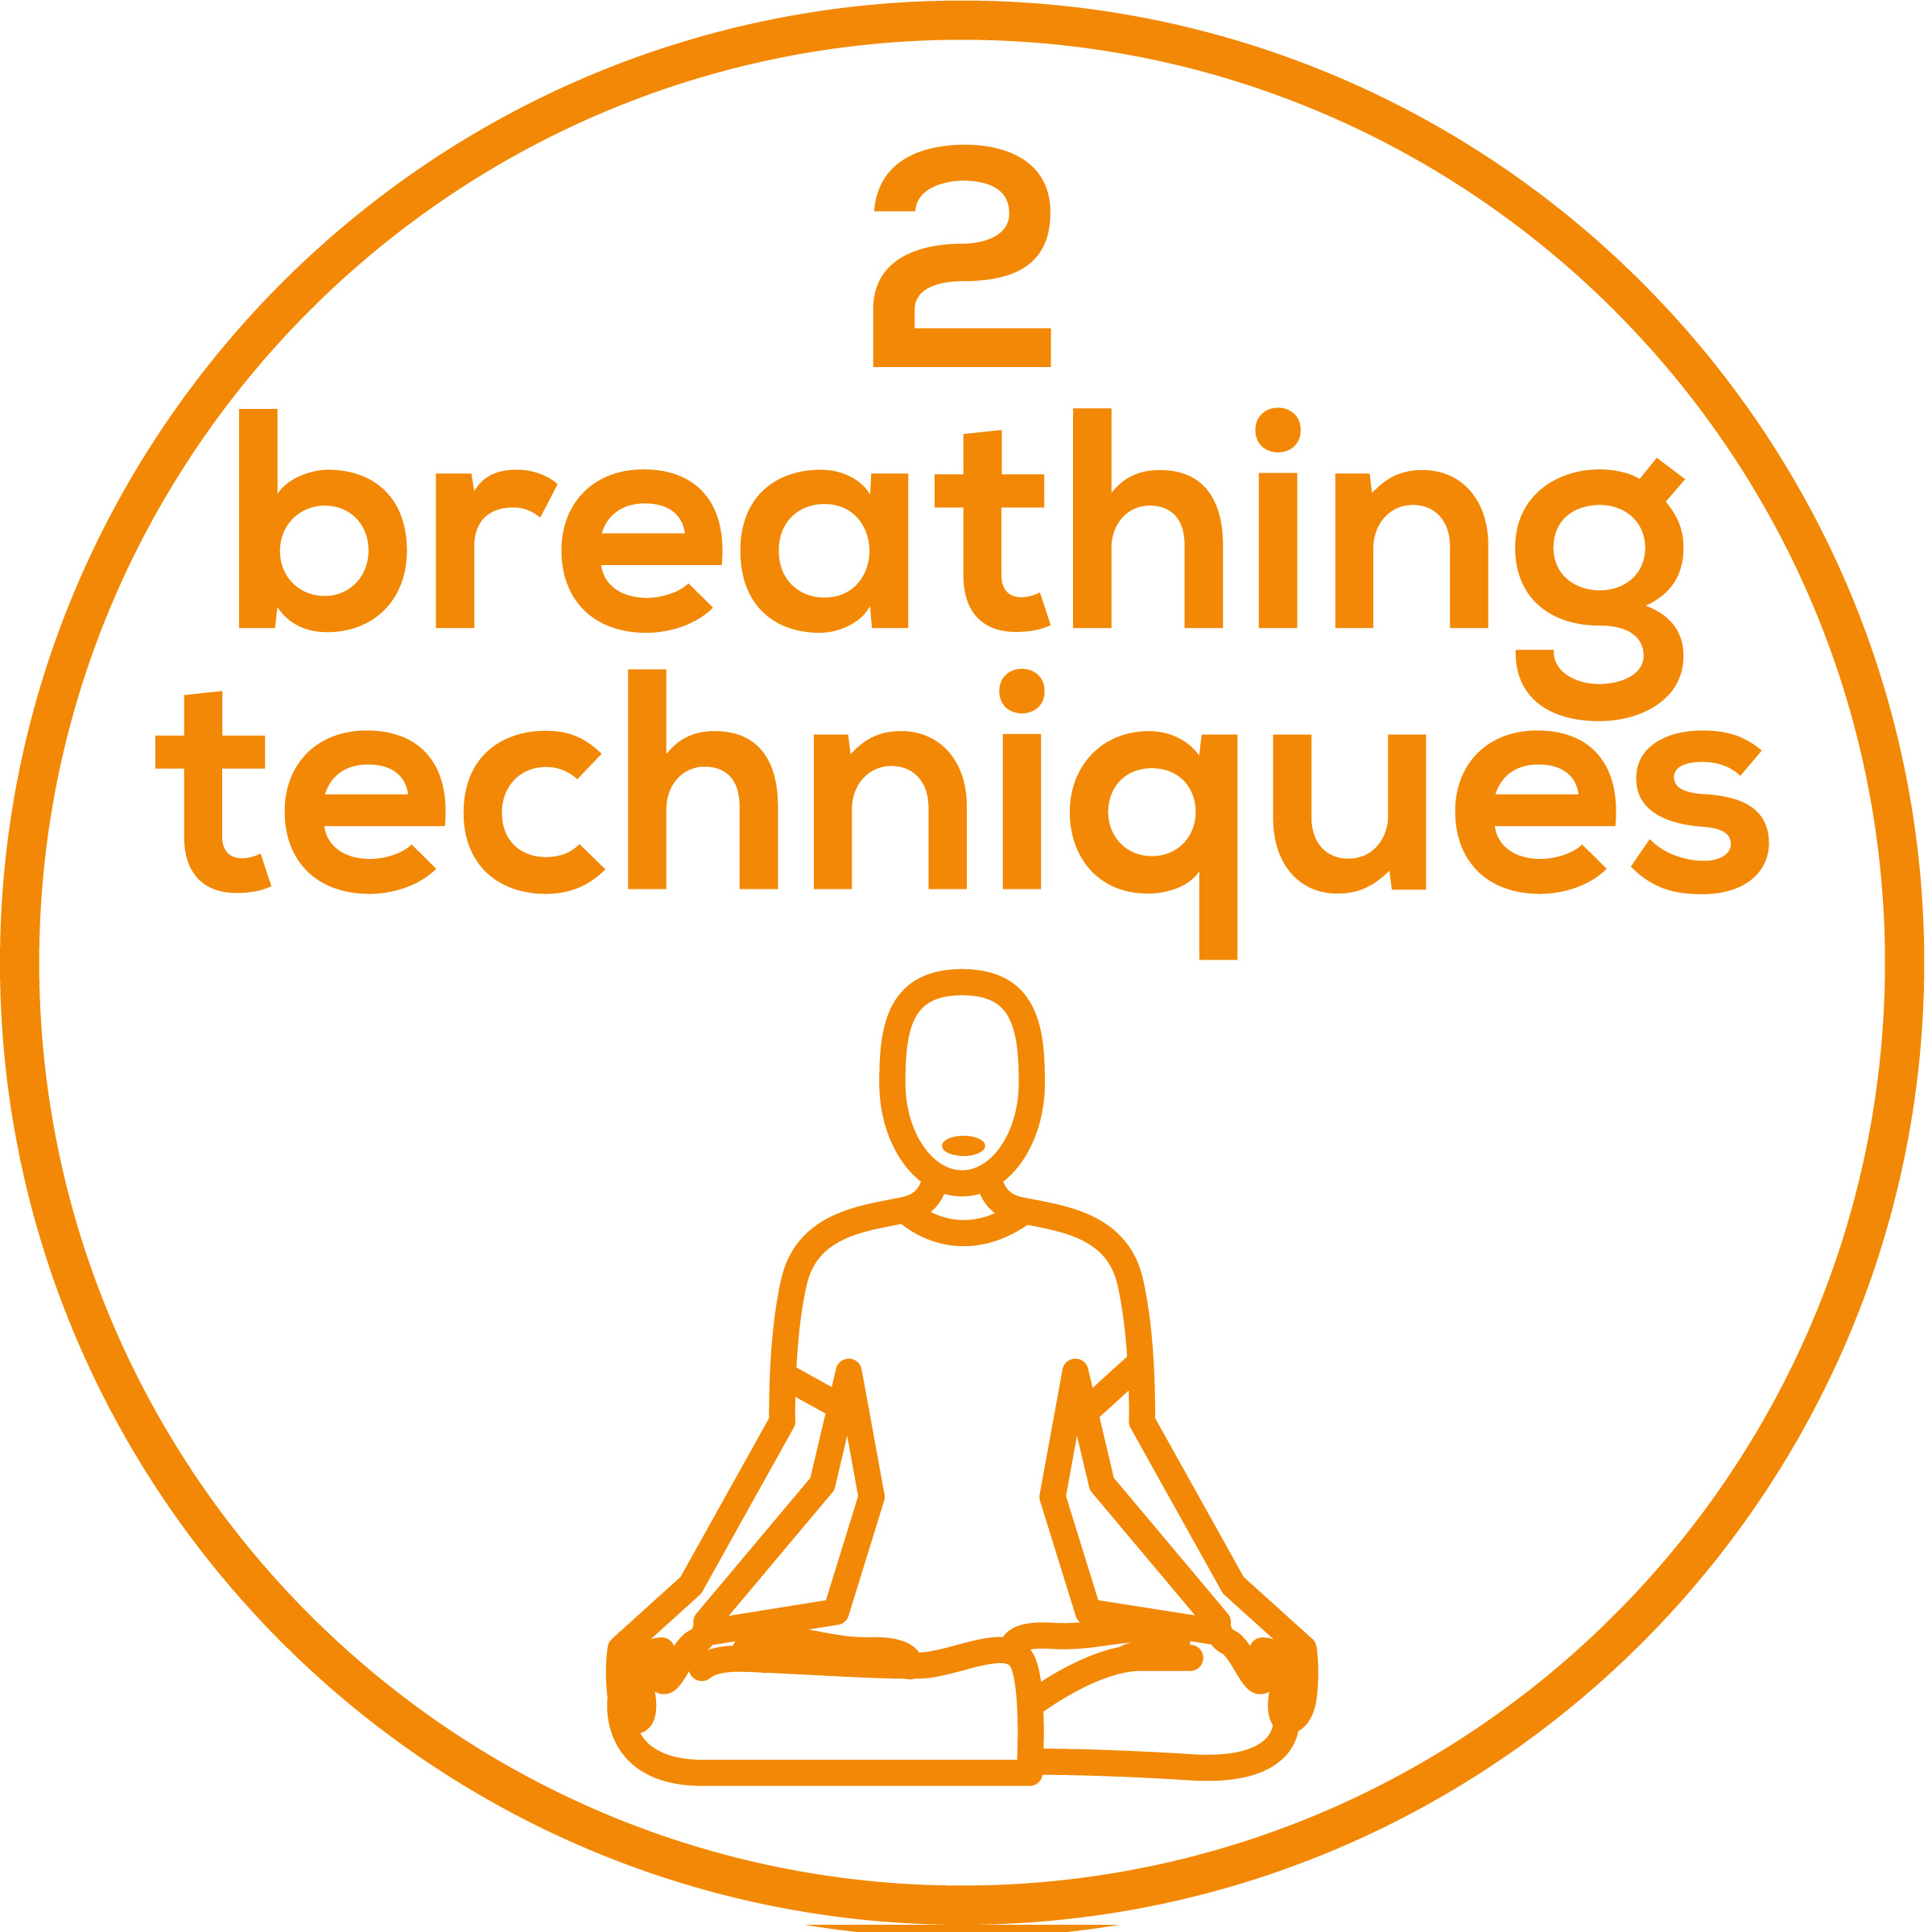 2 breathing techniques Choose between the 4-7-8 yoga breathing technique and the relaxation breathing technique